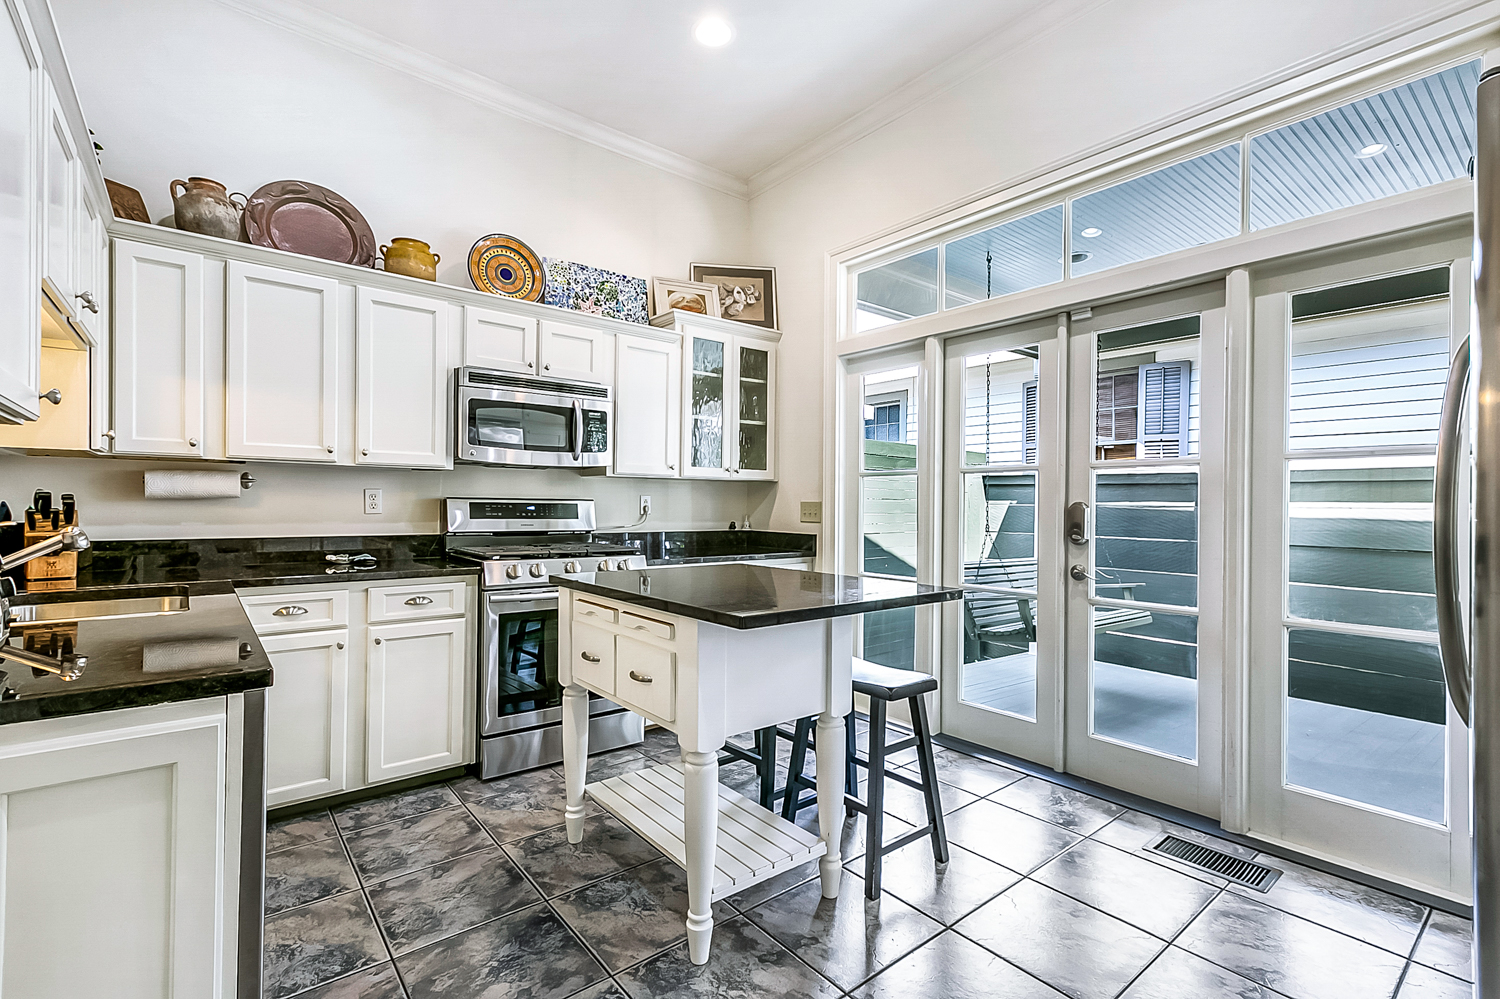 Garden District, House, 2 beds, 2.0 baths, $5500 per month New Orleans Rental - devie image_7